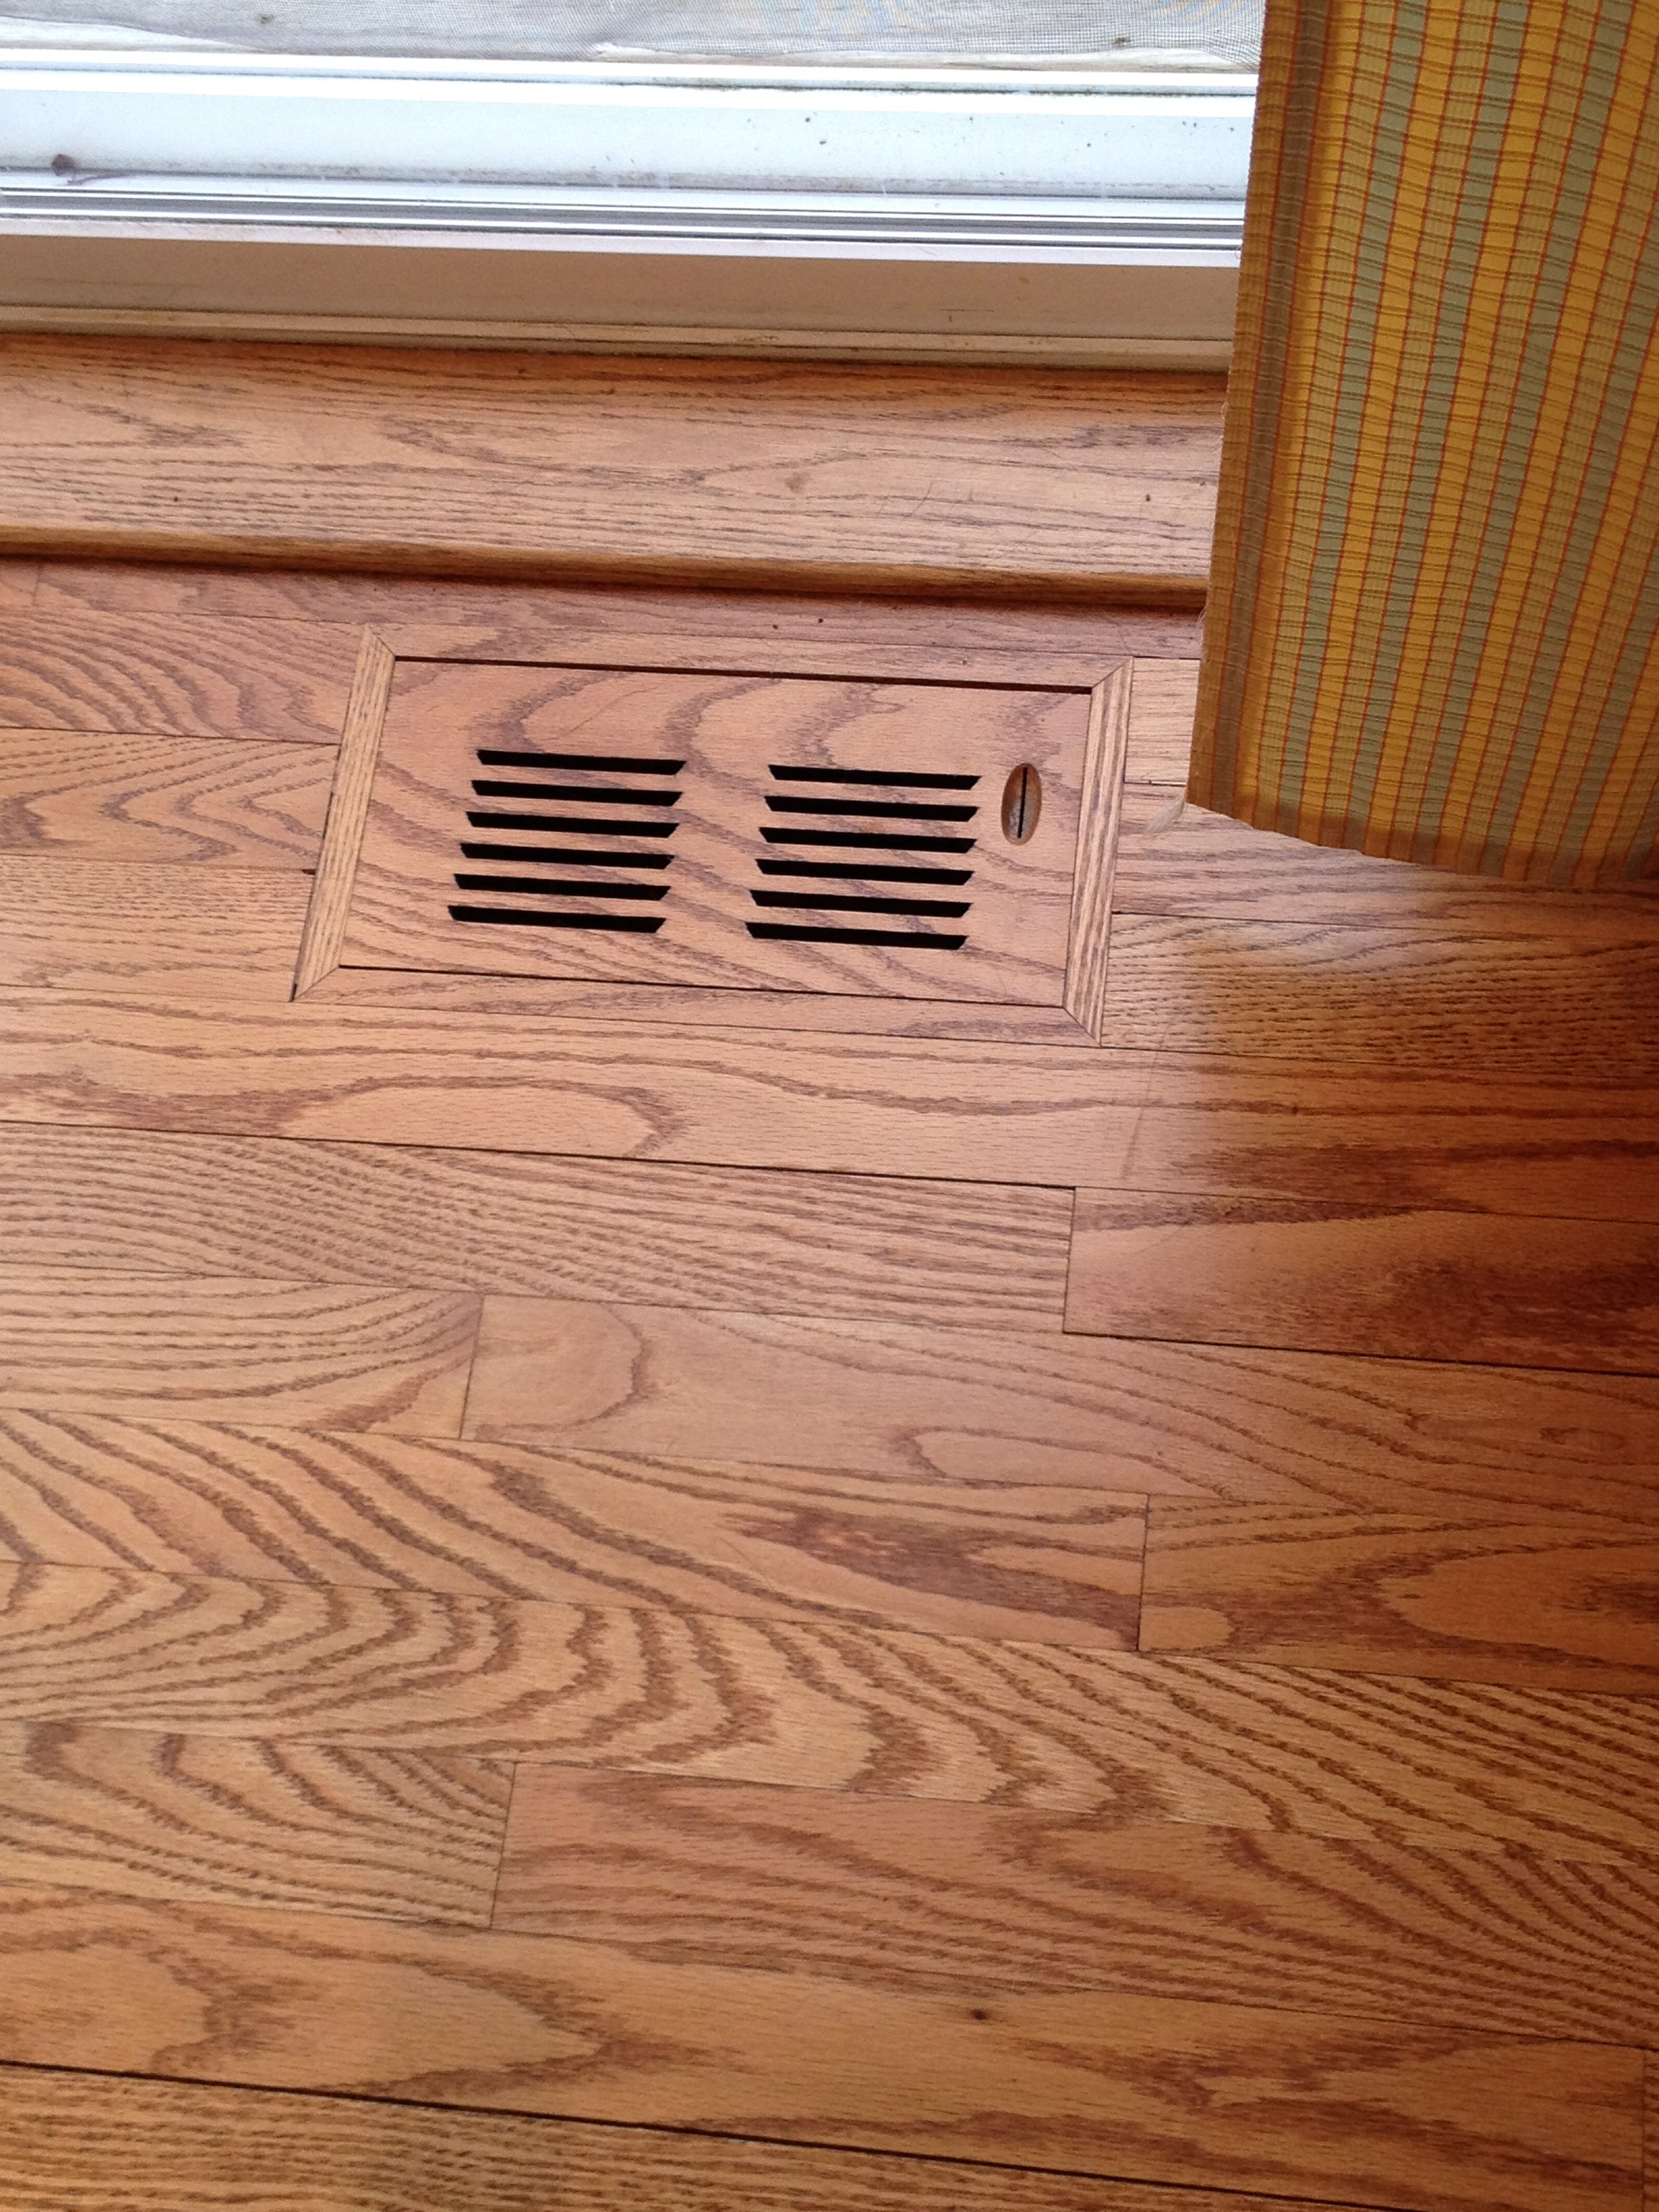 hickory hardwood floor vents of flooring portfolio gorsegner brothers with img 0222